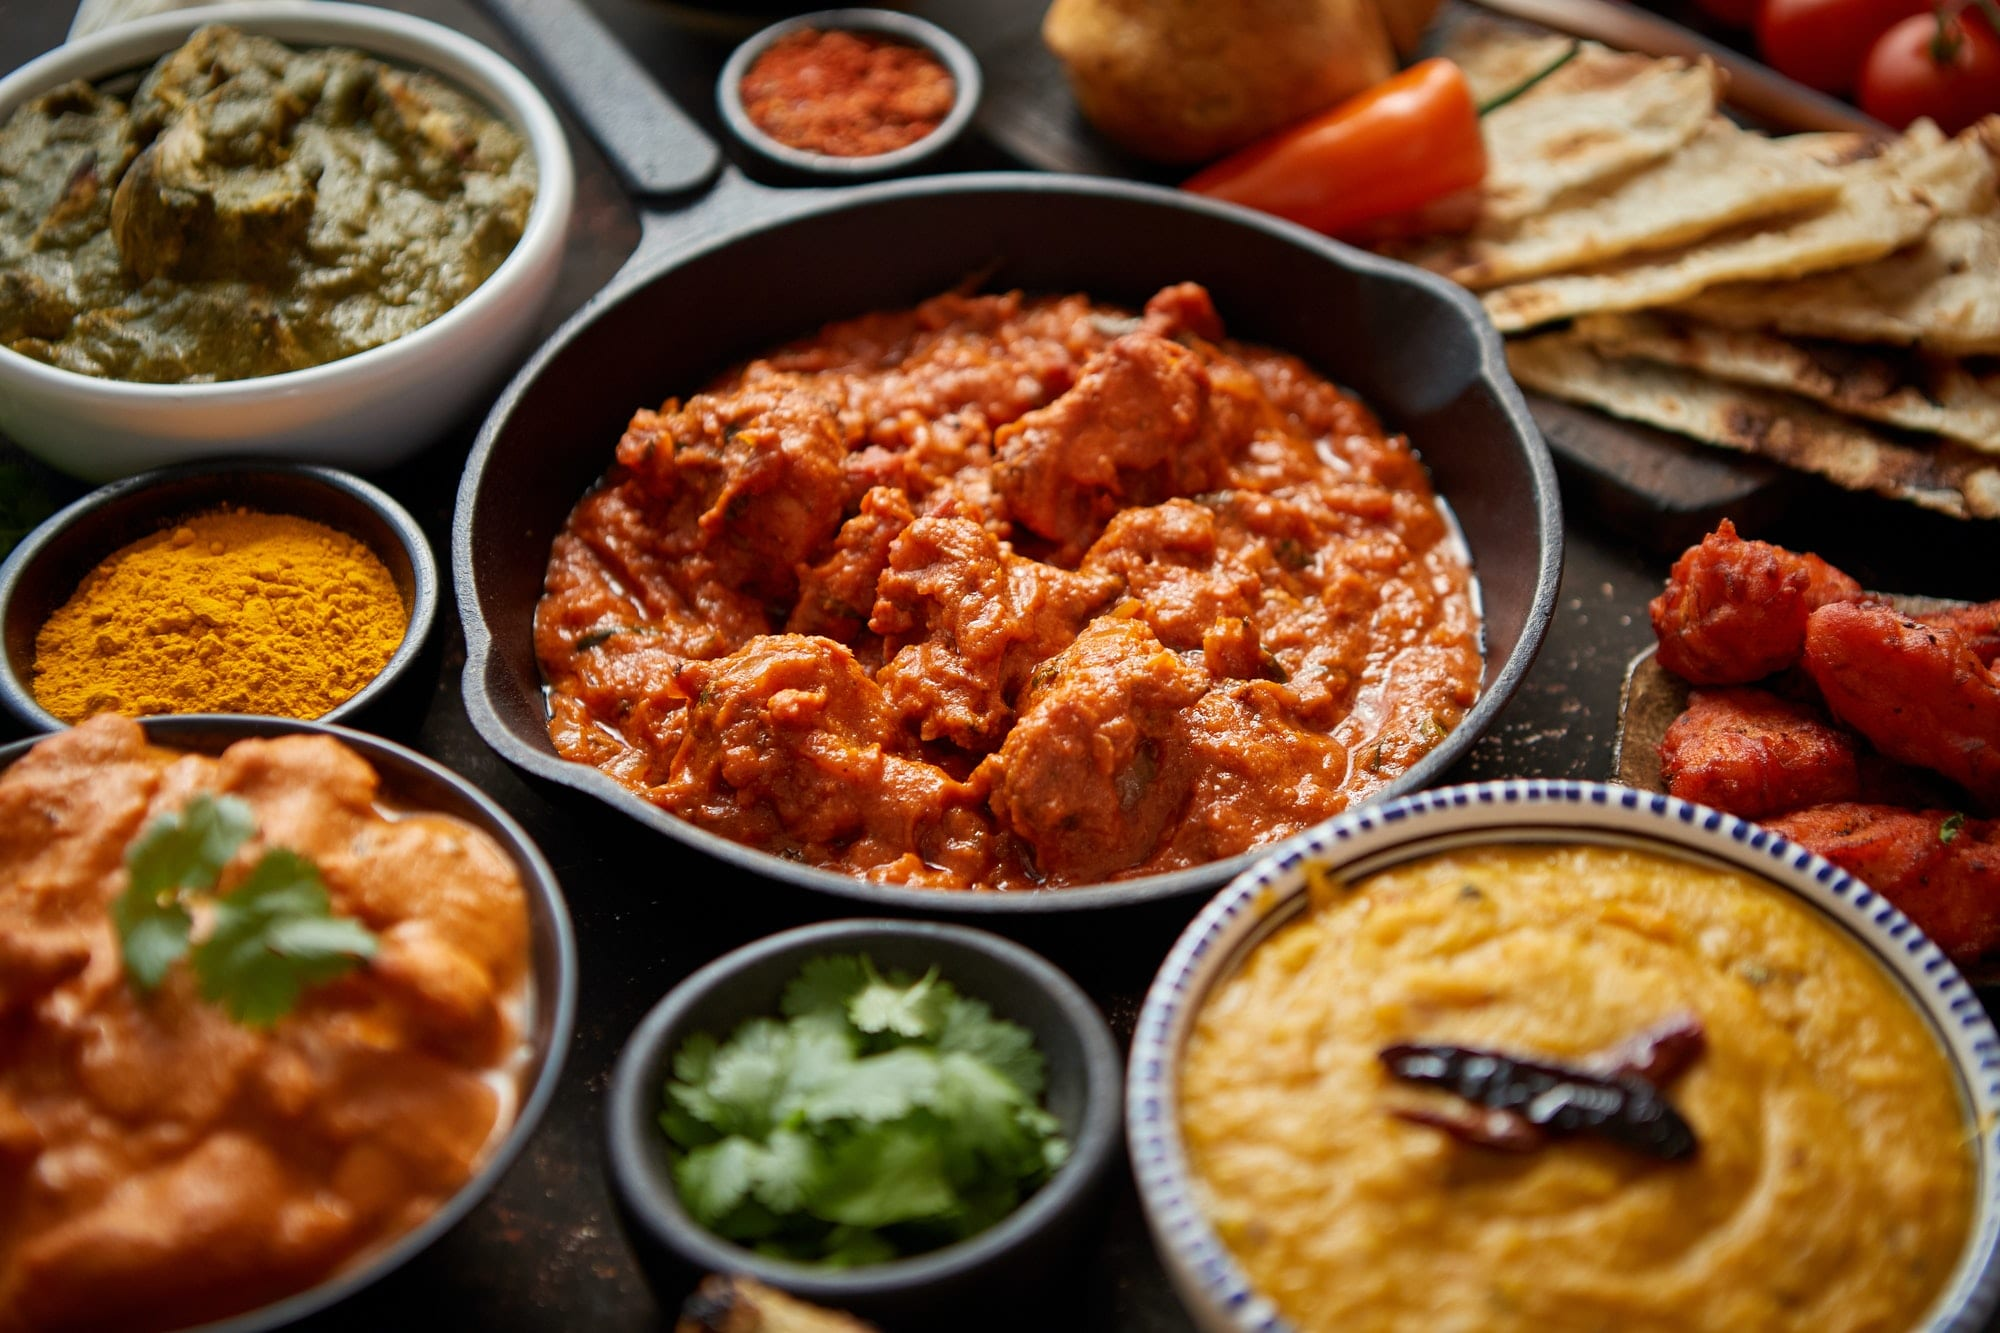 Assortment of various kinds of Indian curry